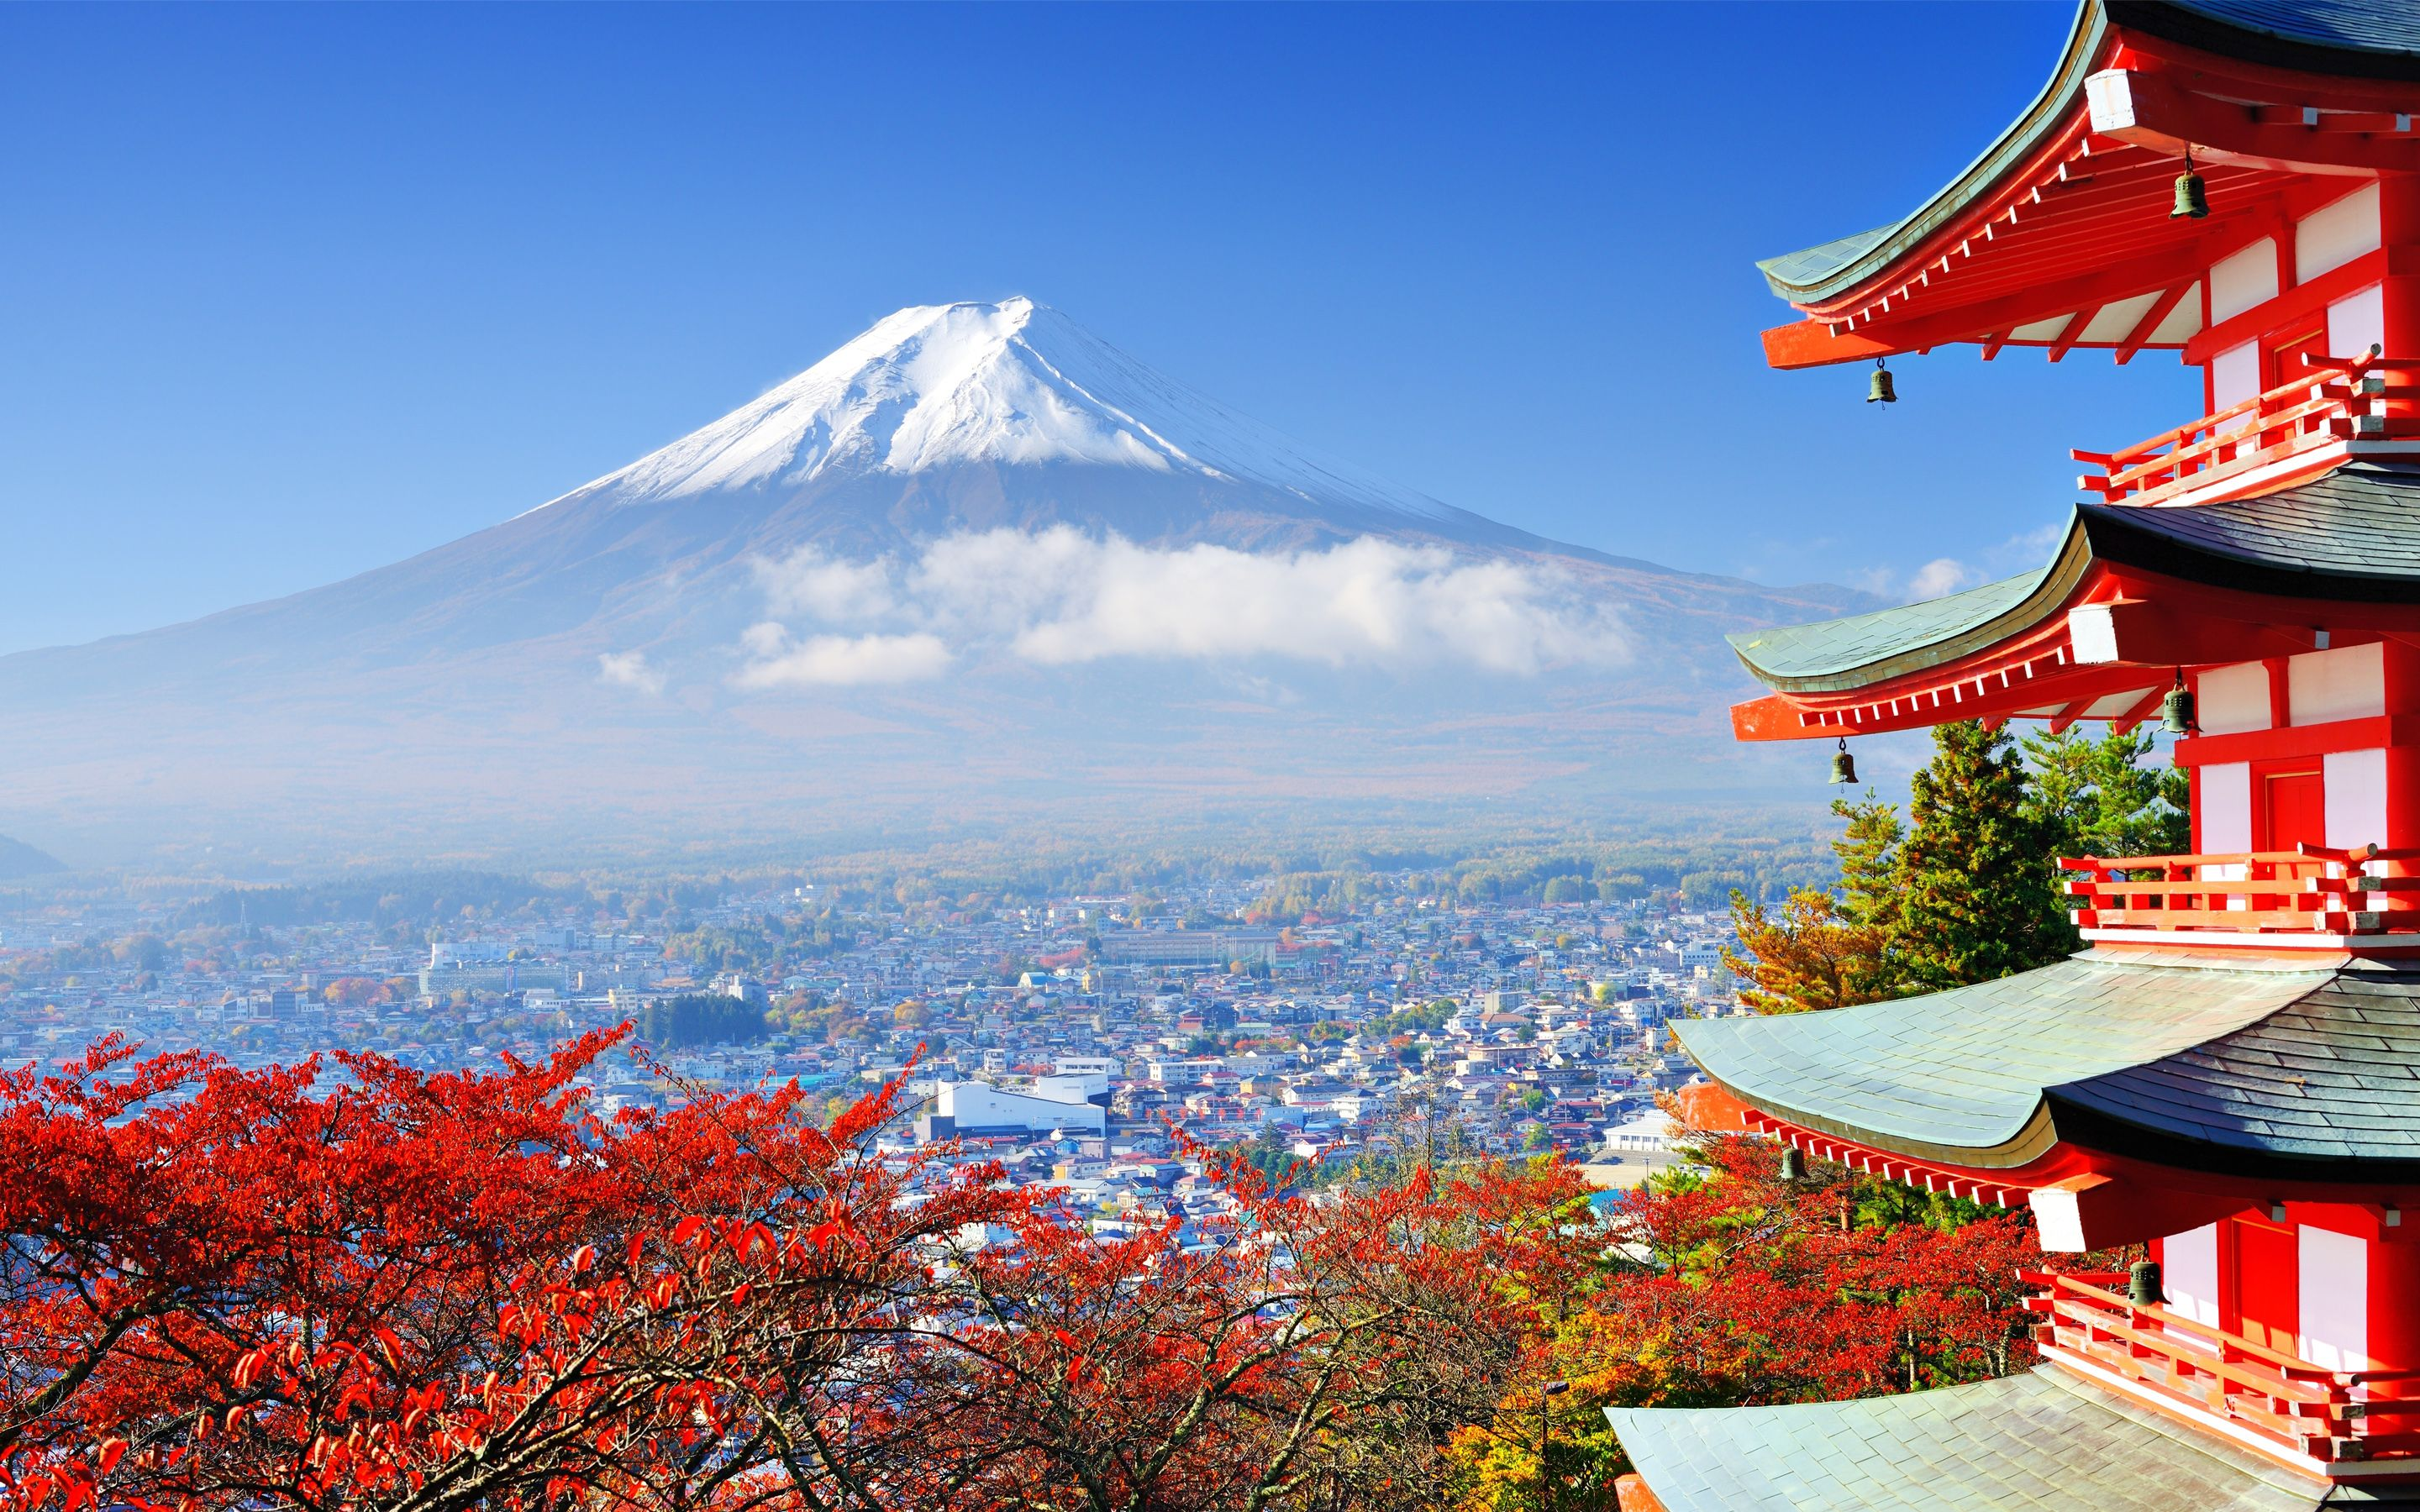 Mount Fuji Japan Wallpapers   Top Mount Fuji Japan 2880x1800